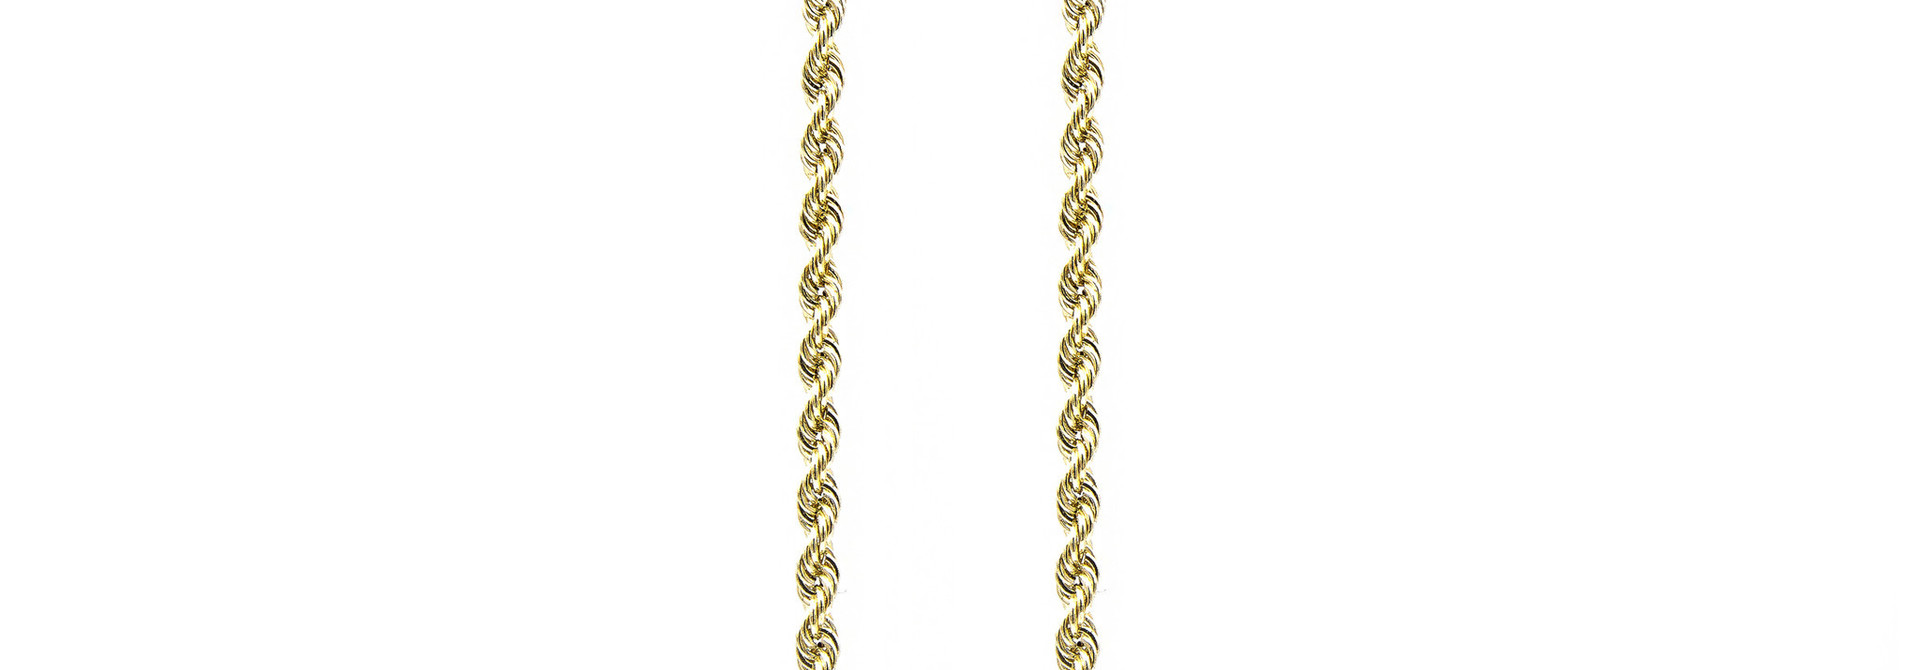 Rope Chain NL 18k-5 mm